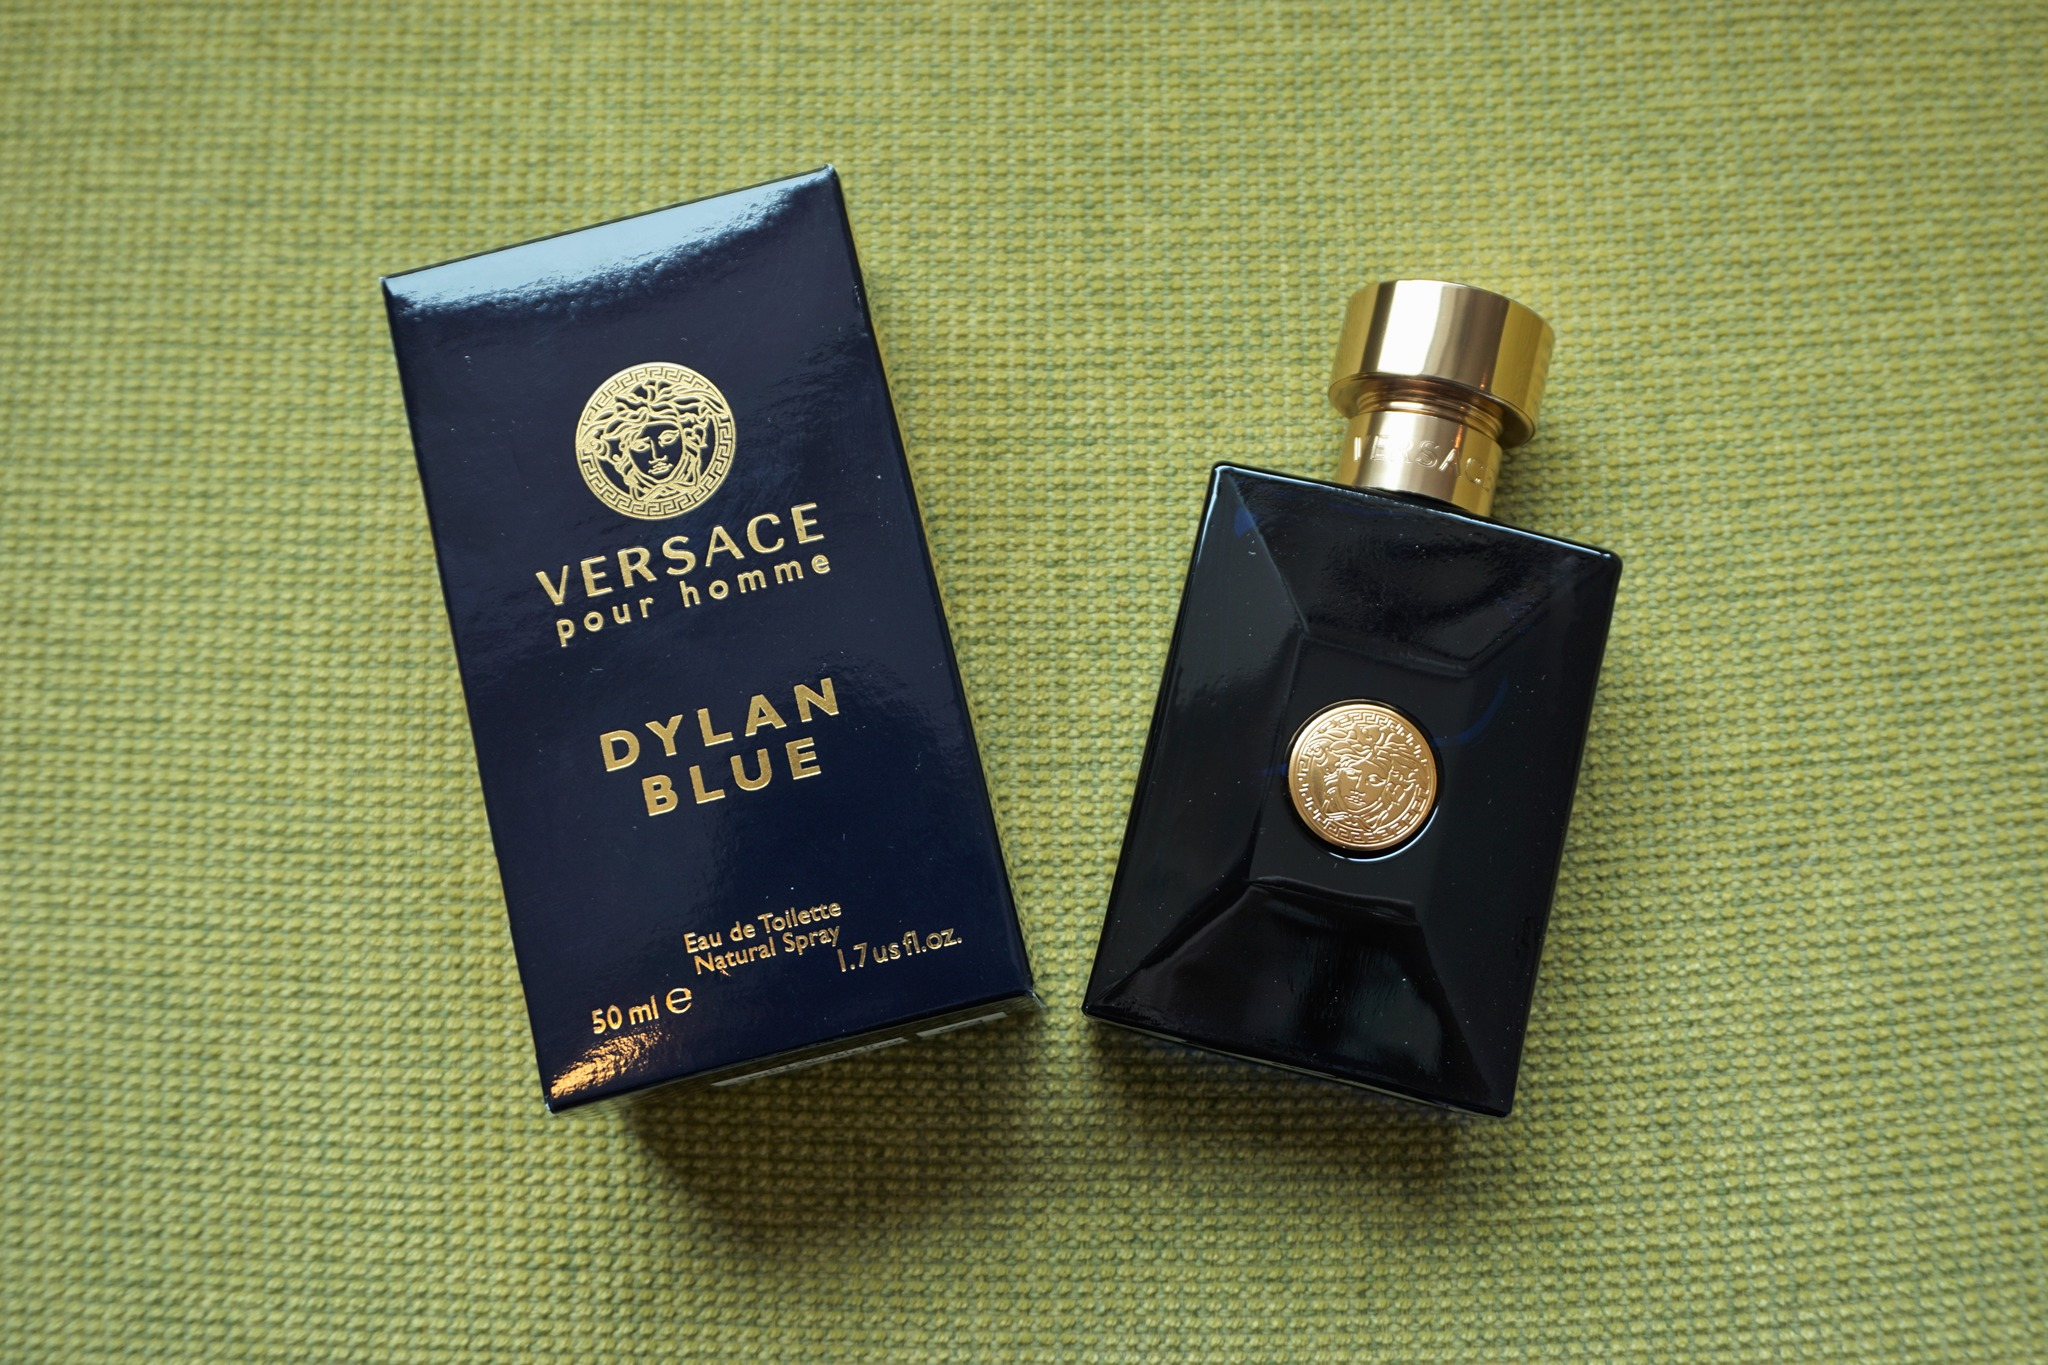 Versace Pour Homme Dylan Blue  The Biker s Fragrance – Pinoy Guy Guide d665a26fca8